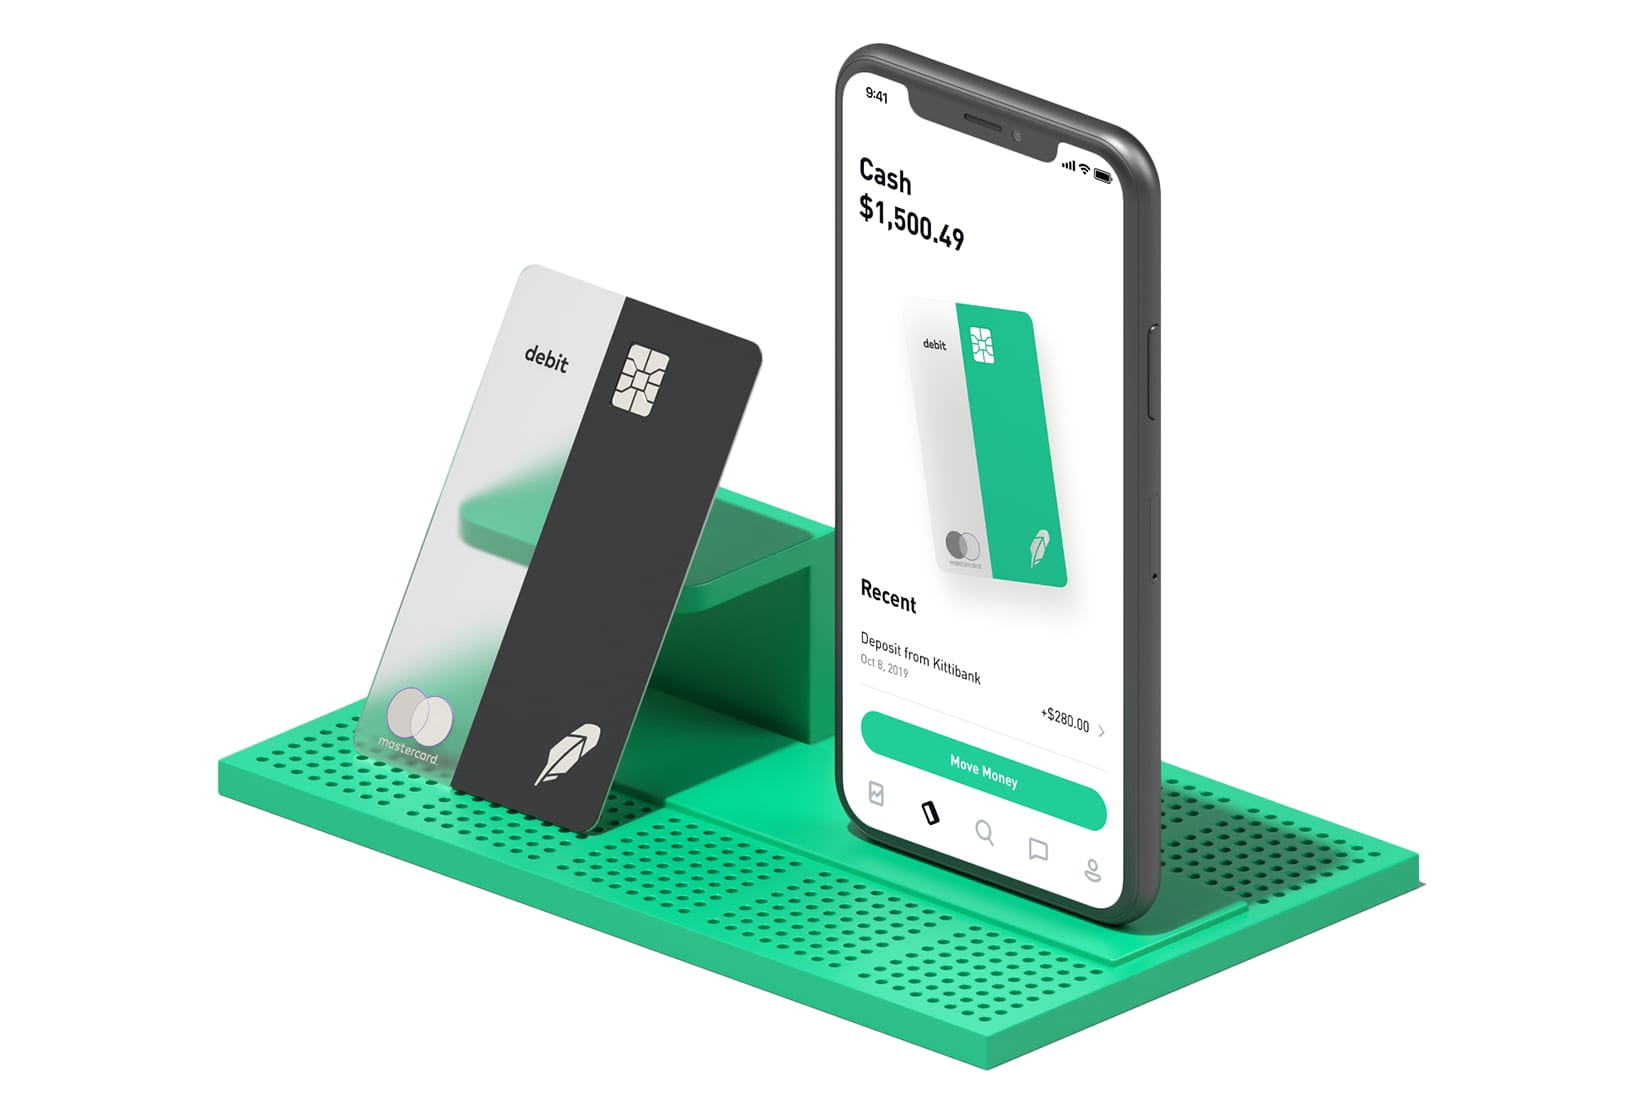 Robinhood makes second attempt at launching a high-yield account similar to banks